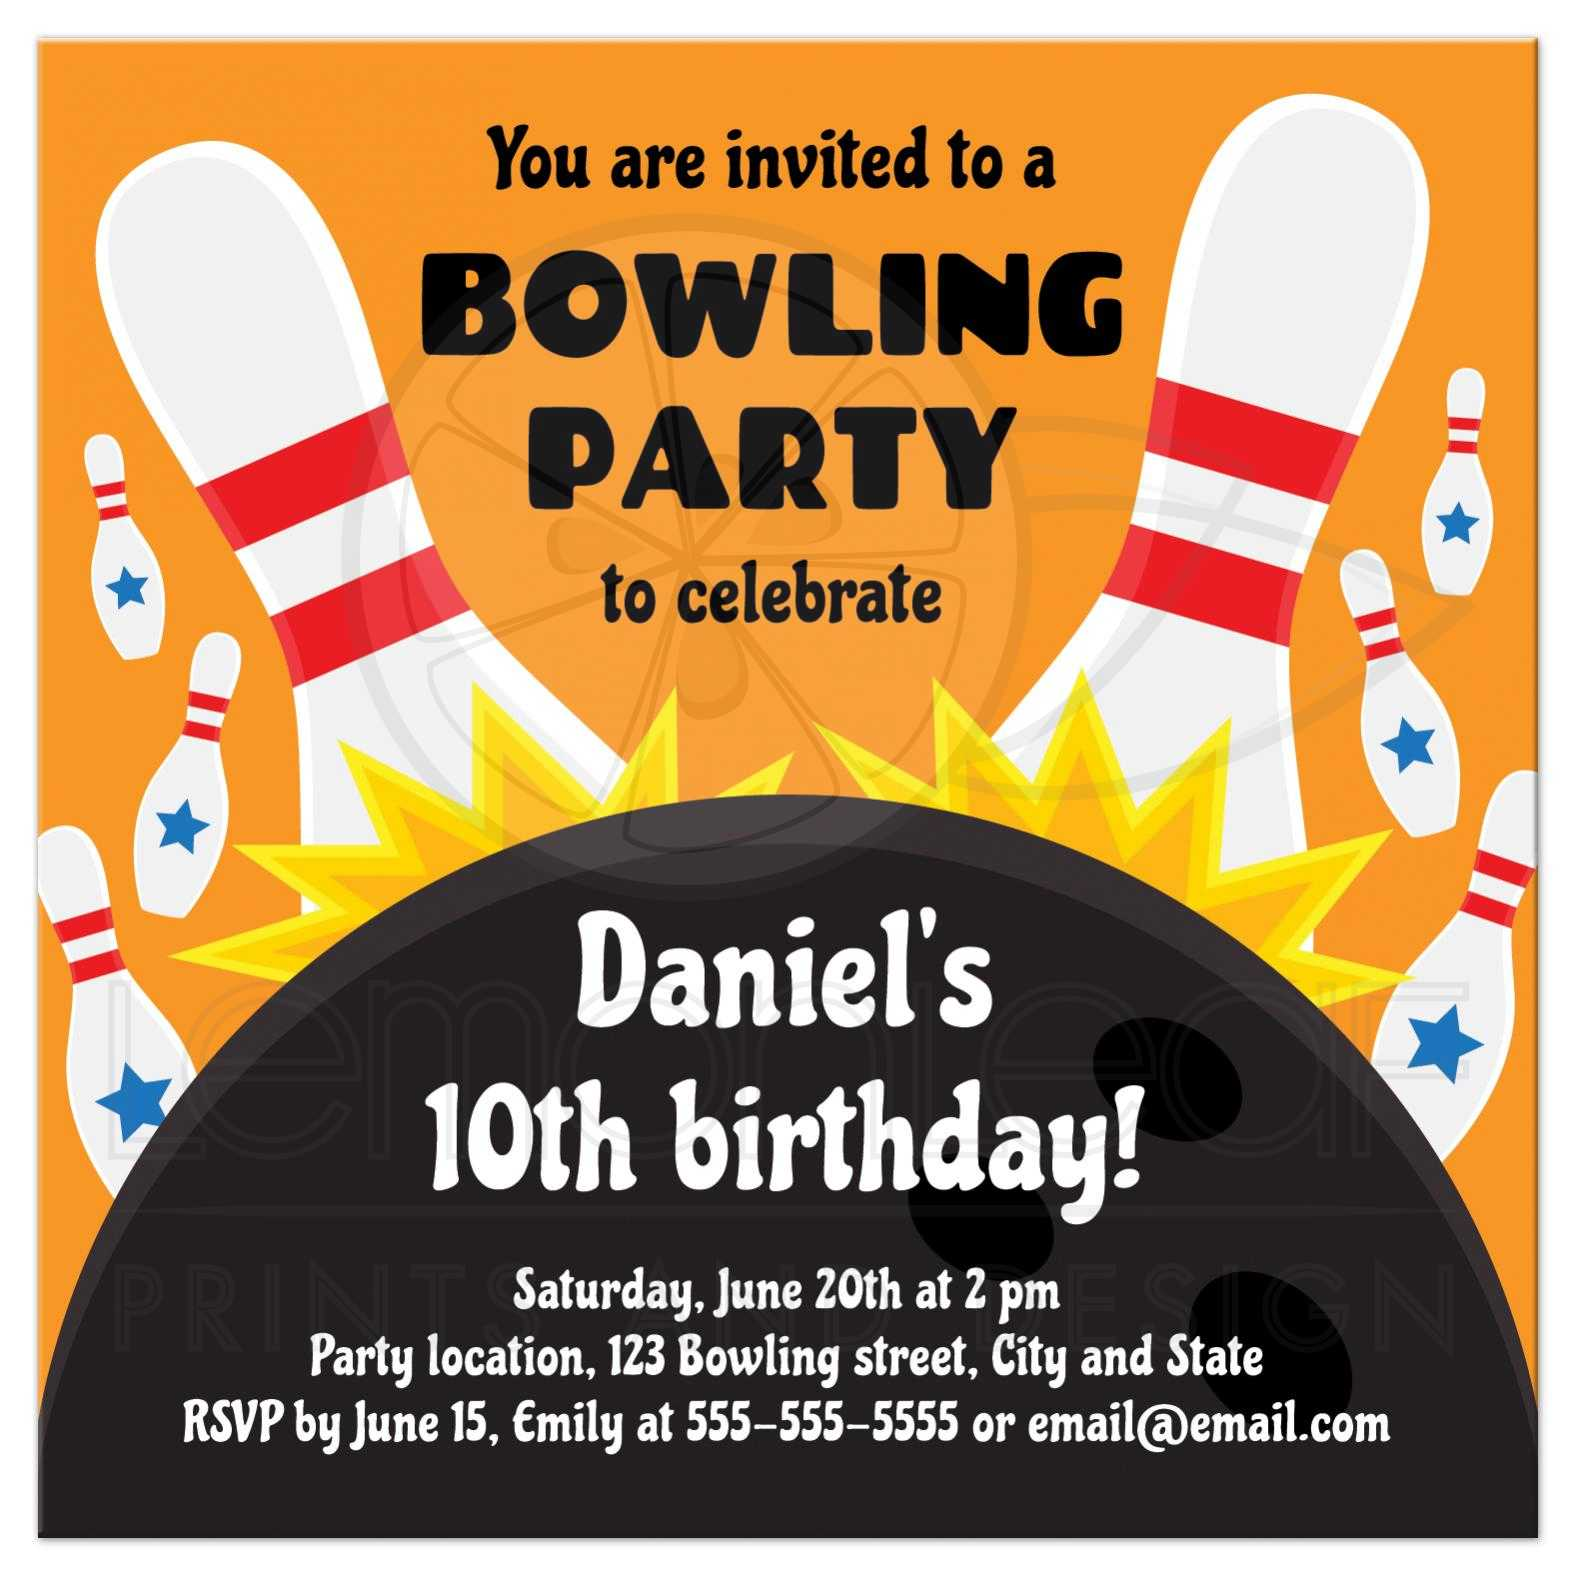 Bowling party invite for kids, ball smashing into pins, orange version